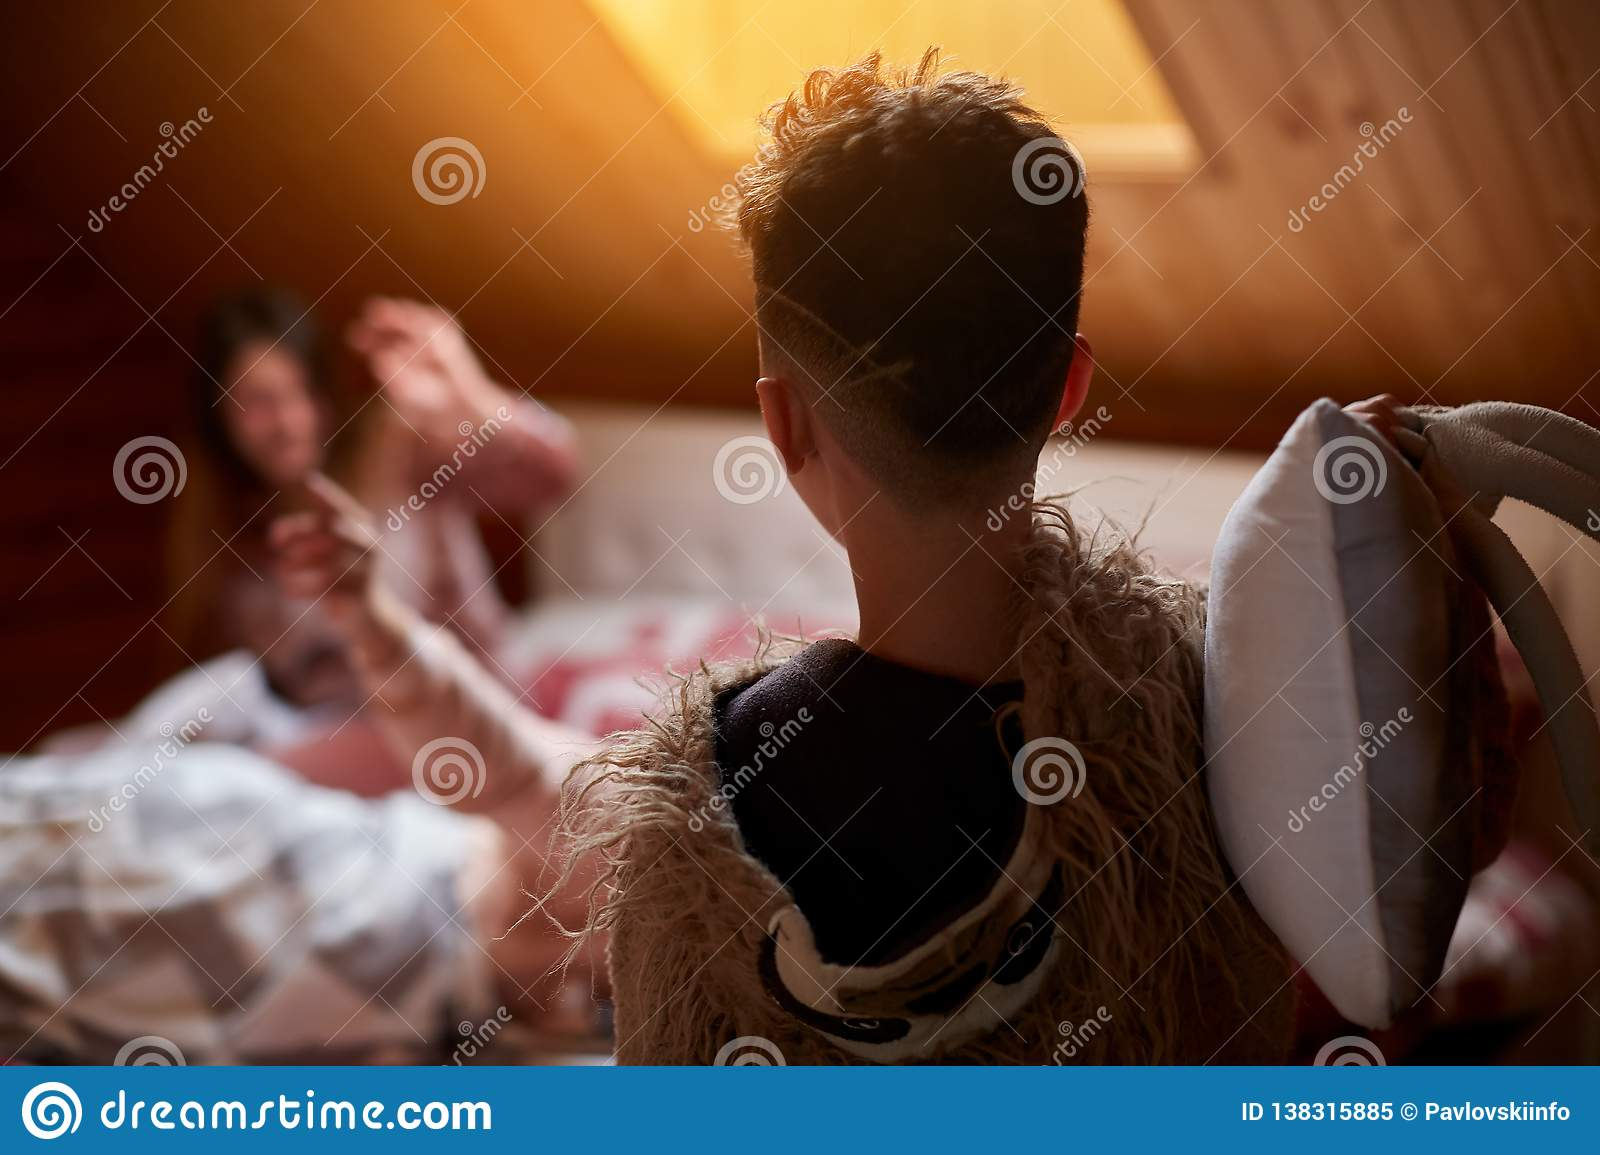 Mom and son play on the bed, in the morning arrange a pillow fight in their pajamas